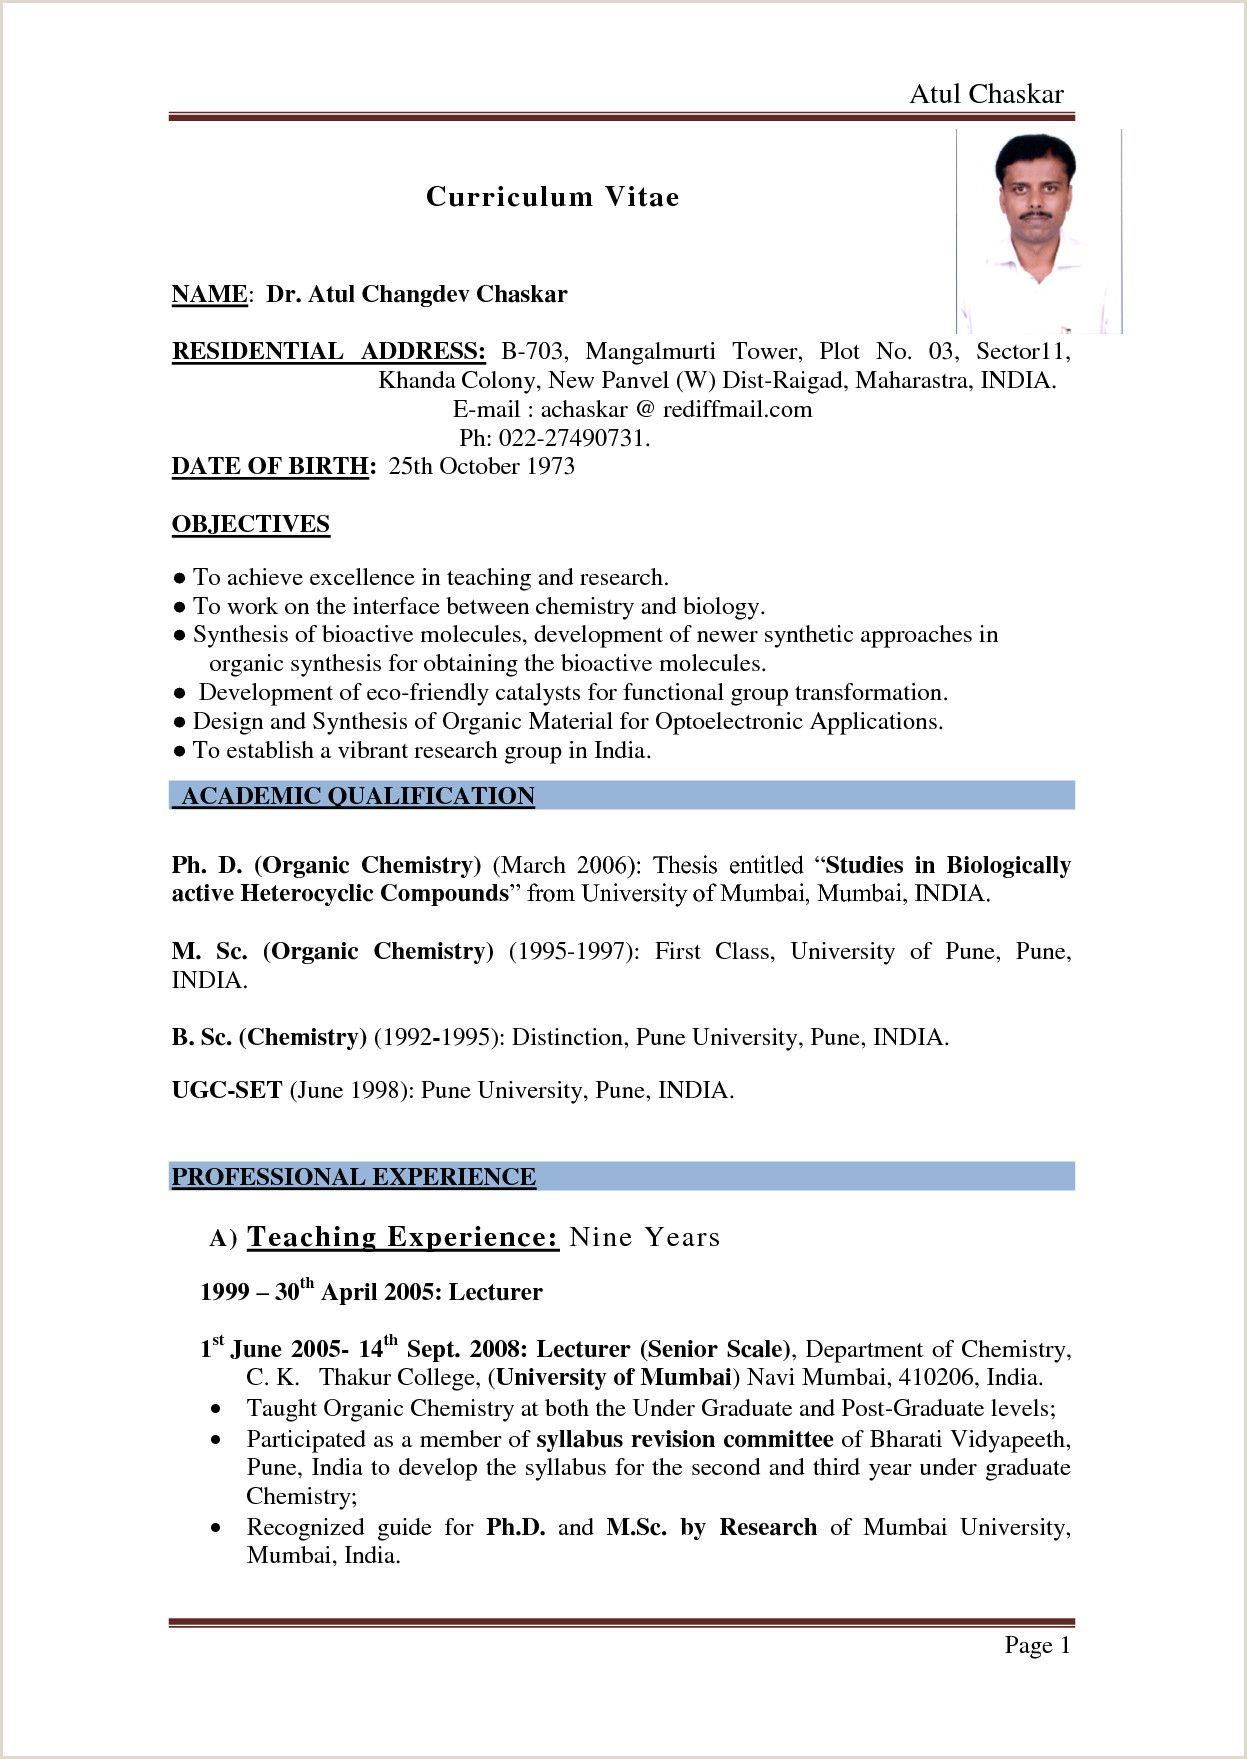 resume format for bsc chemistry freshers pdf best examples fresher sample great objective Resume Bsc Chemistry Fresher Resume Sample